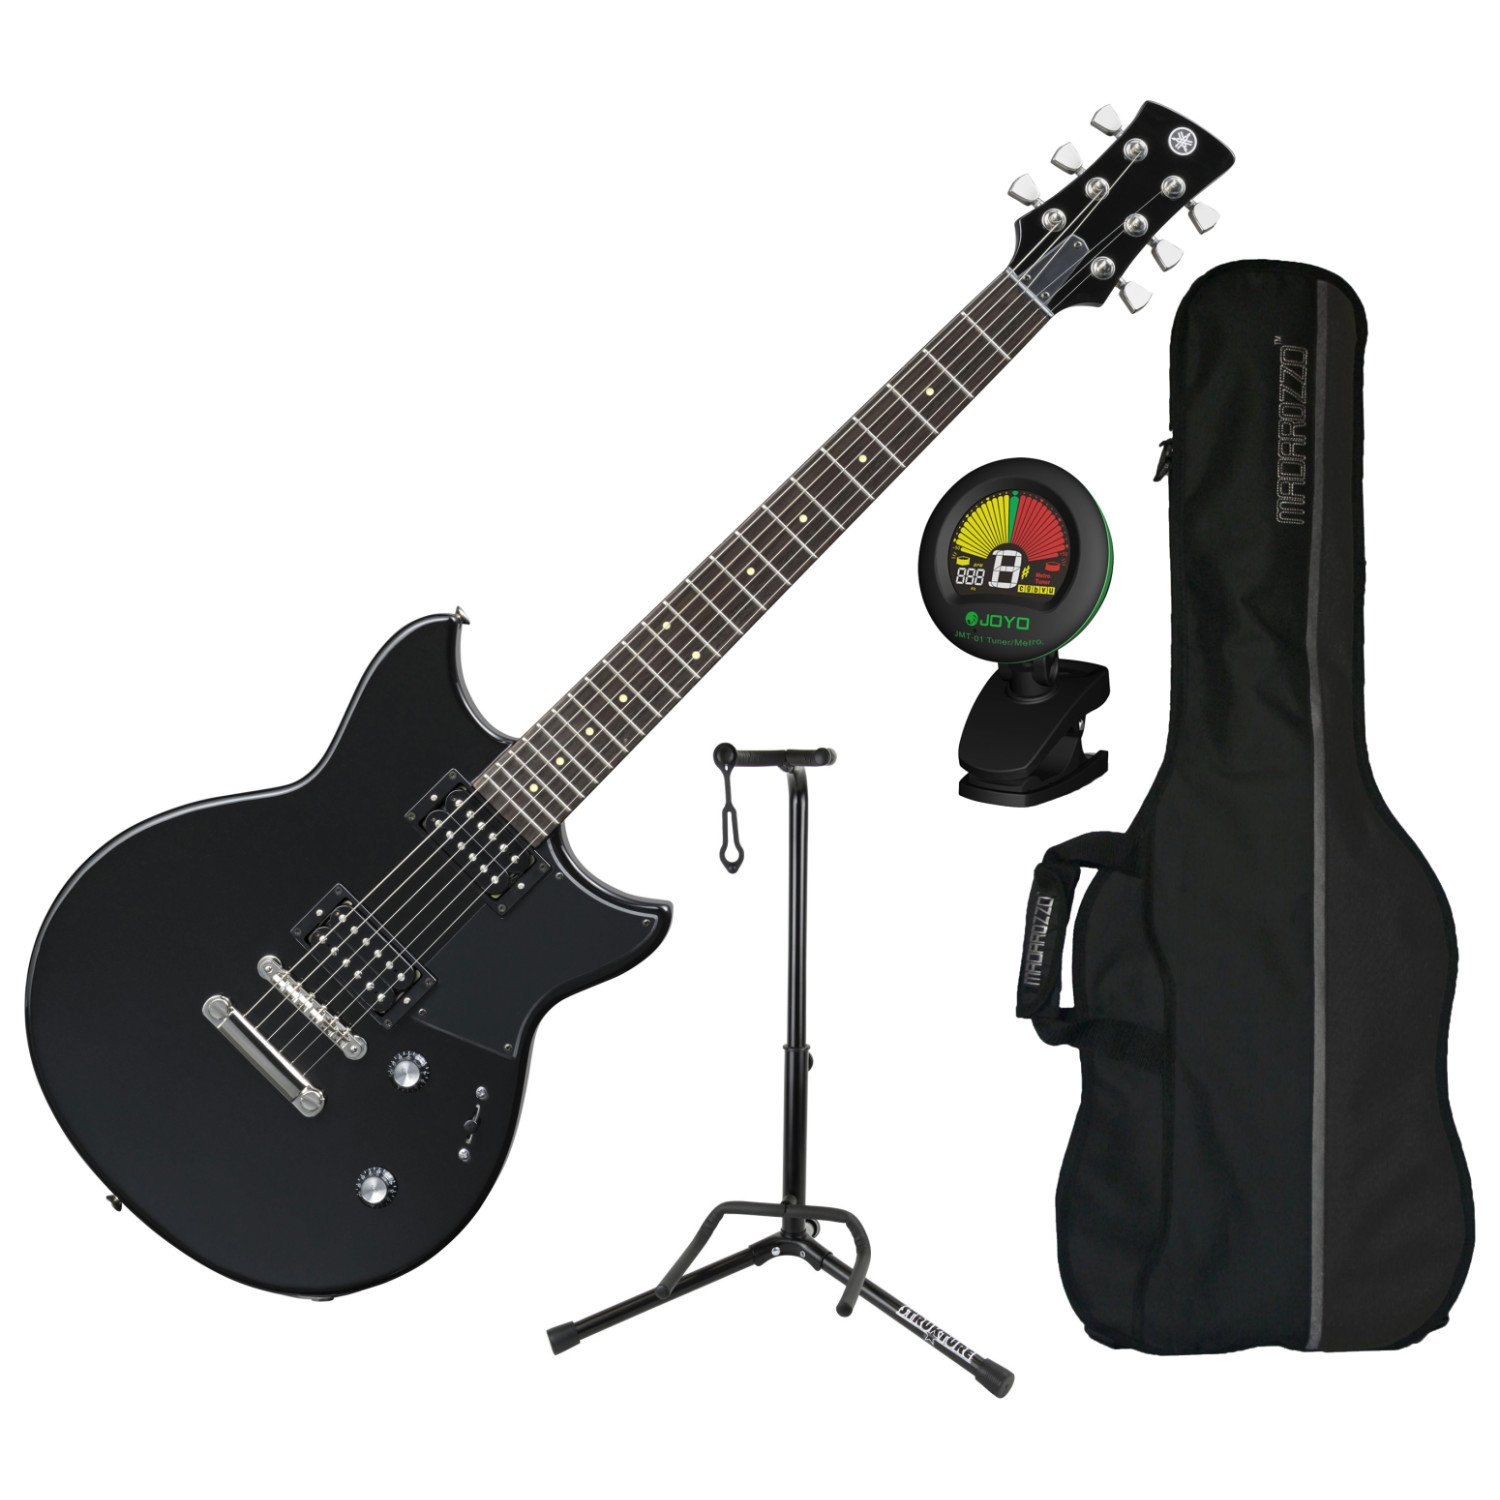 Amazon.com: Yamaha Revstar RS320 BST Double-Cutaway Nato Body Electric Guitar (Black Steel) w/ Gig Bag, Tuner, and Stand: Musical Instruments